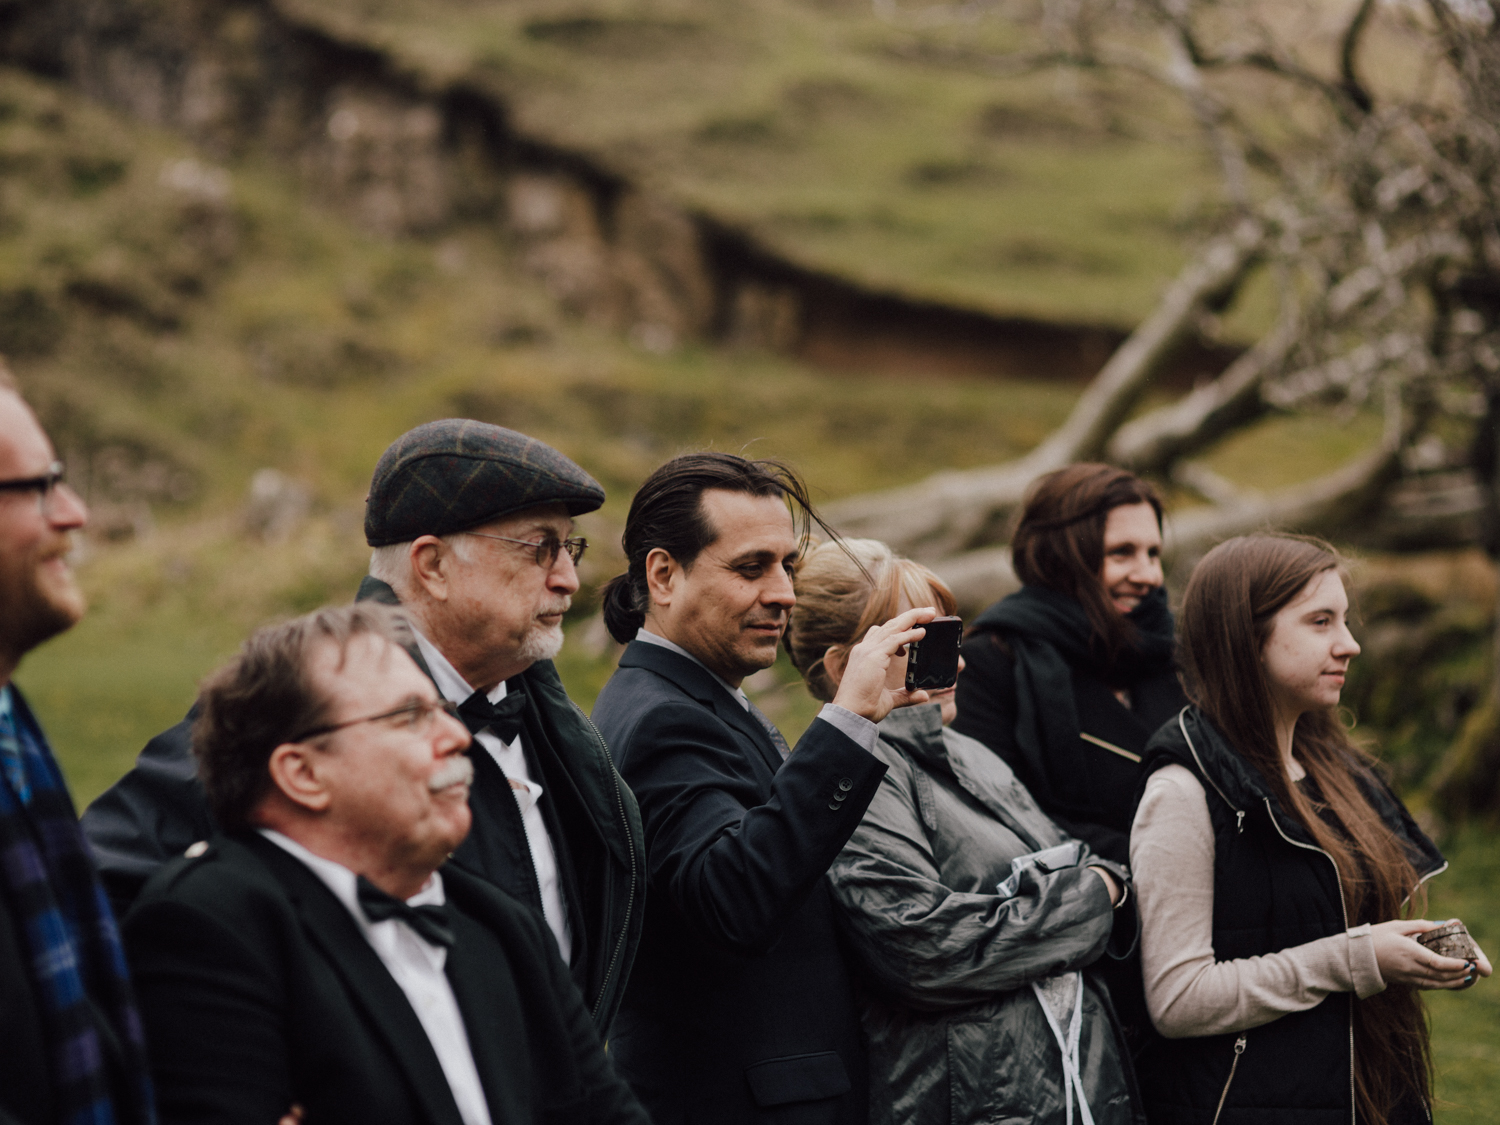 capyture-wedding-photographer-destination-elopement-isle-skye-scotland-197